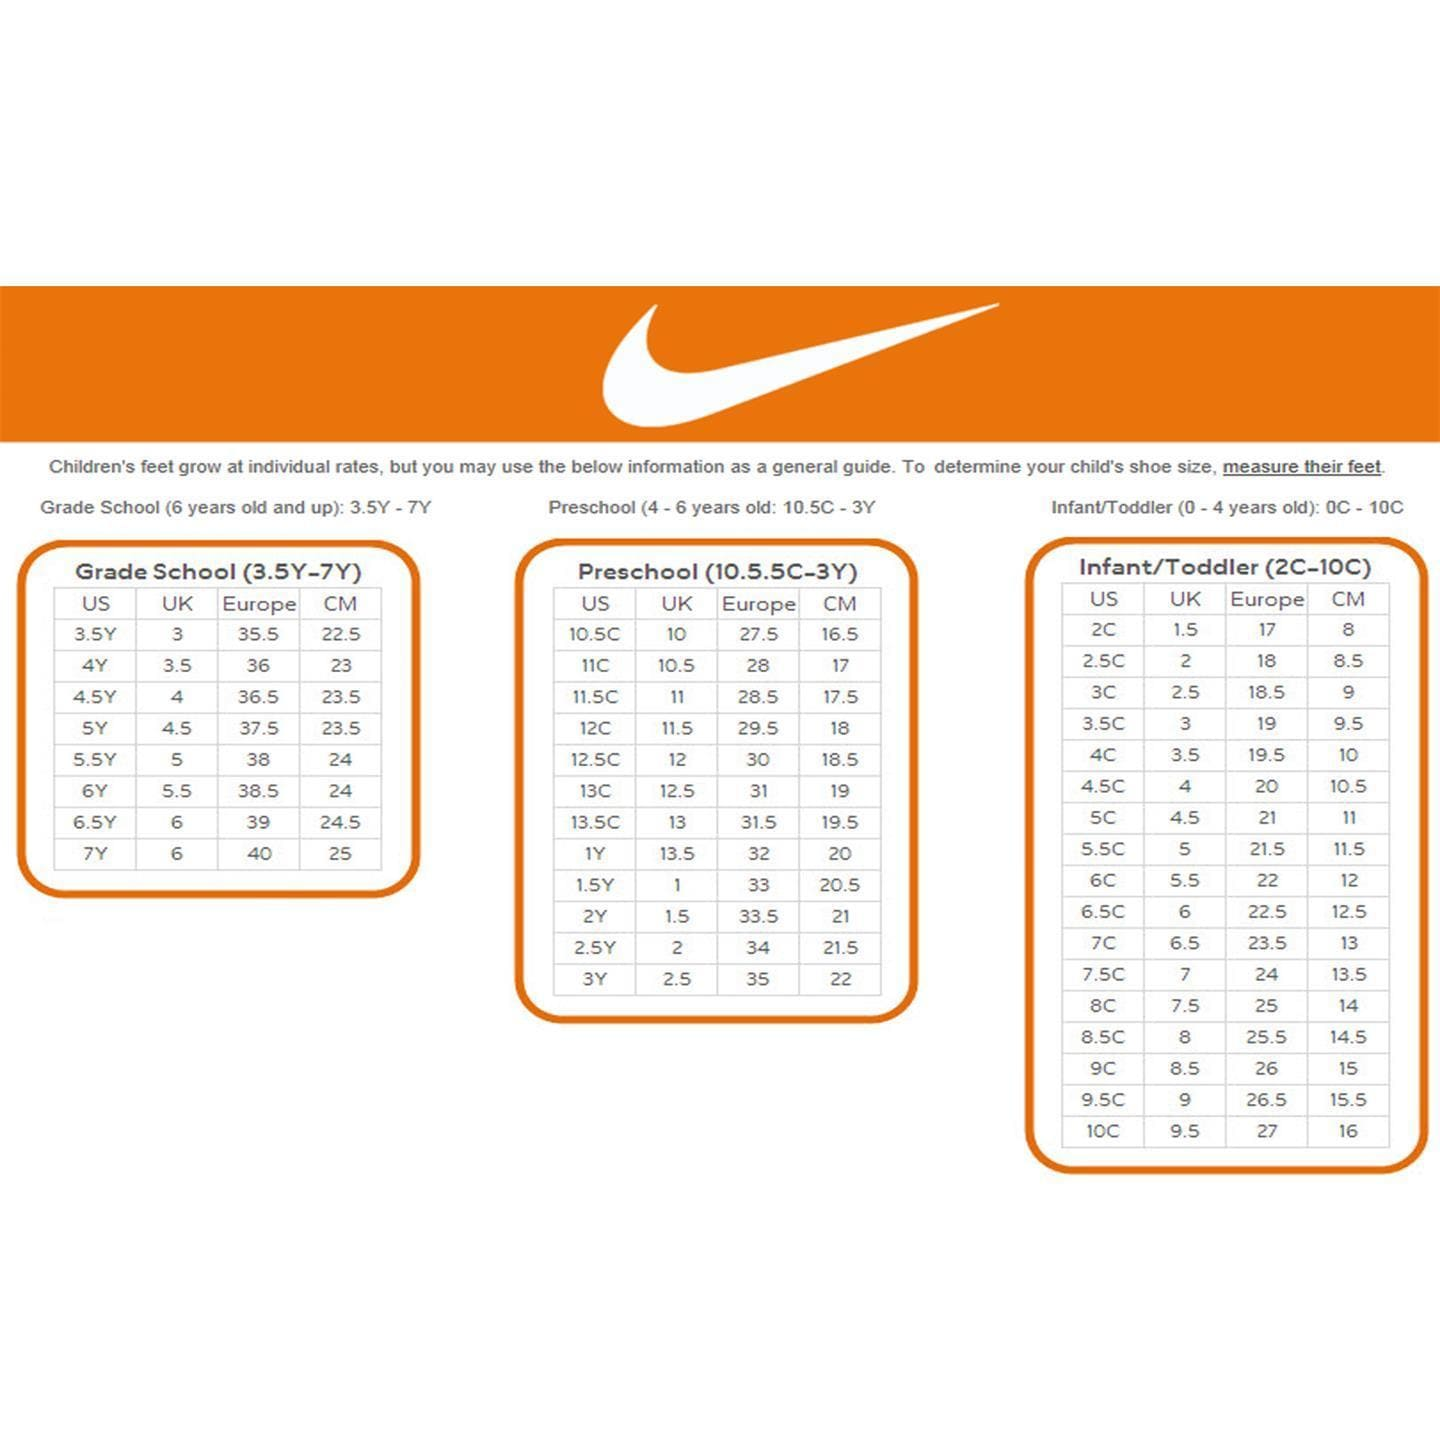 nike shoe size chart in inches - The future